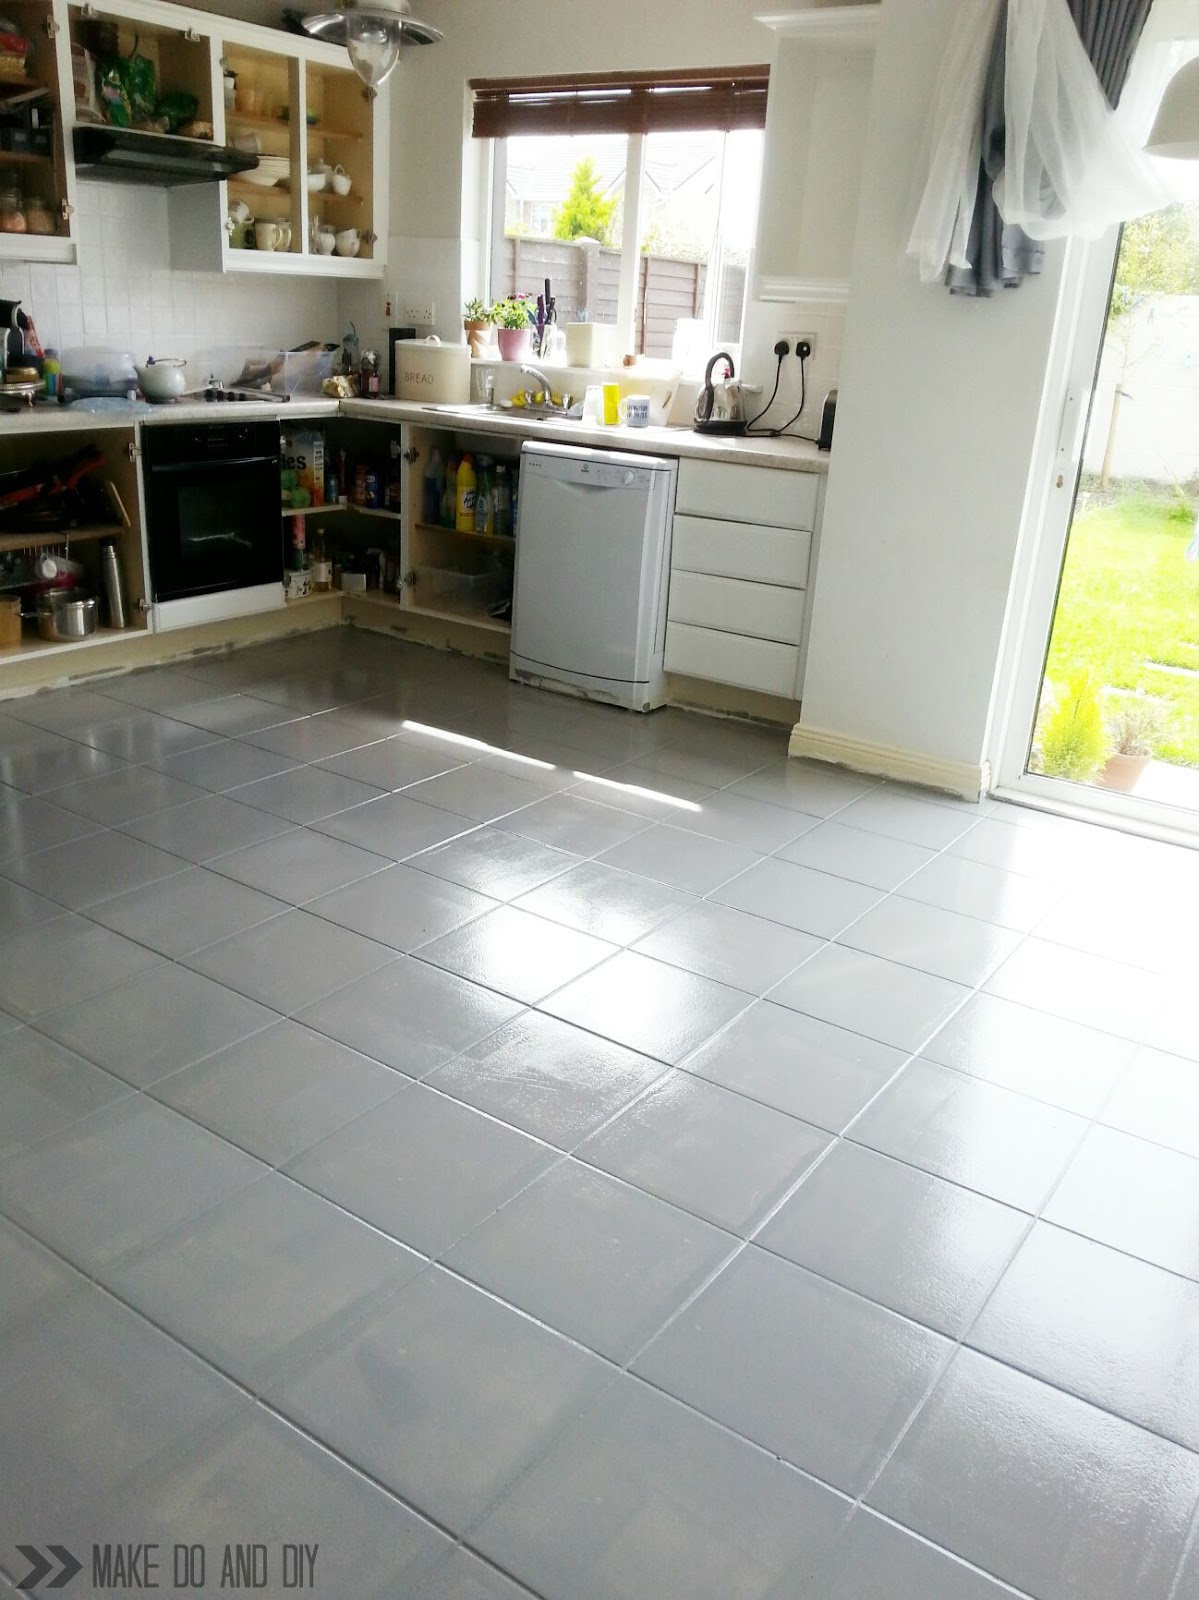 Can You Paint Over Porcelain Tile Floors Wikizie